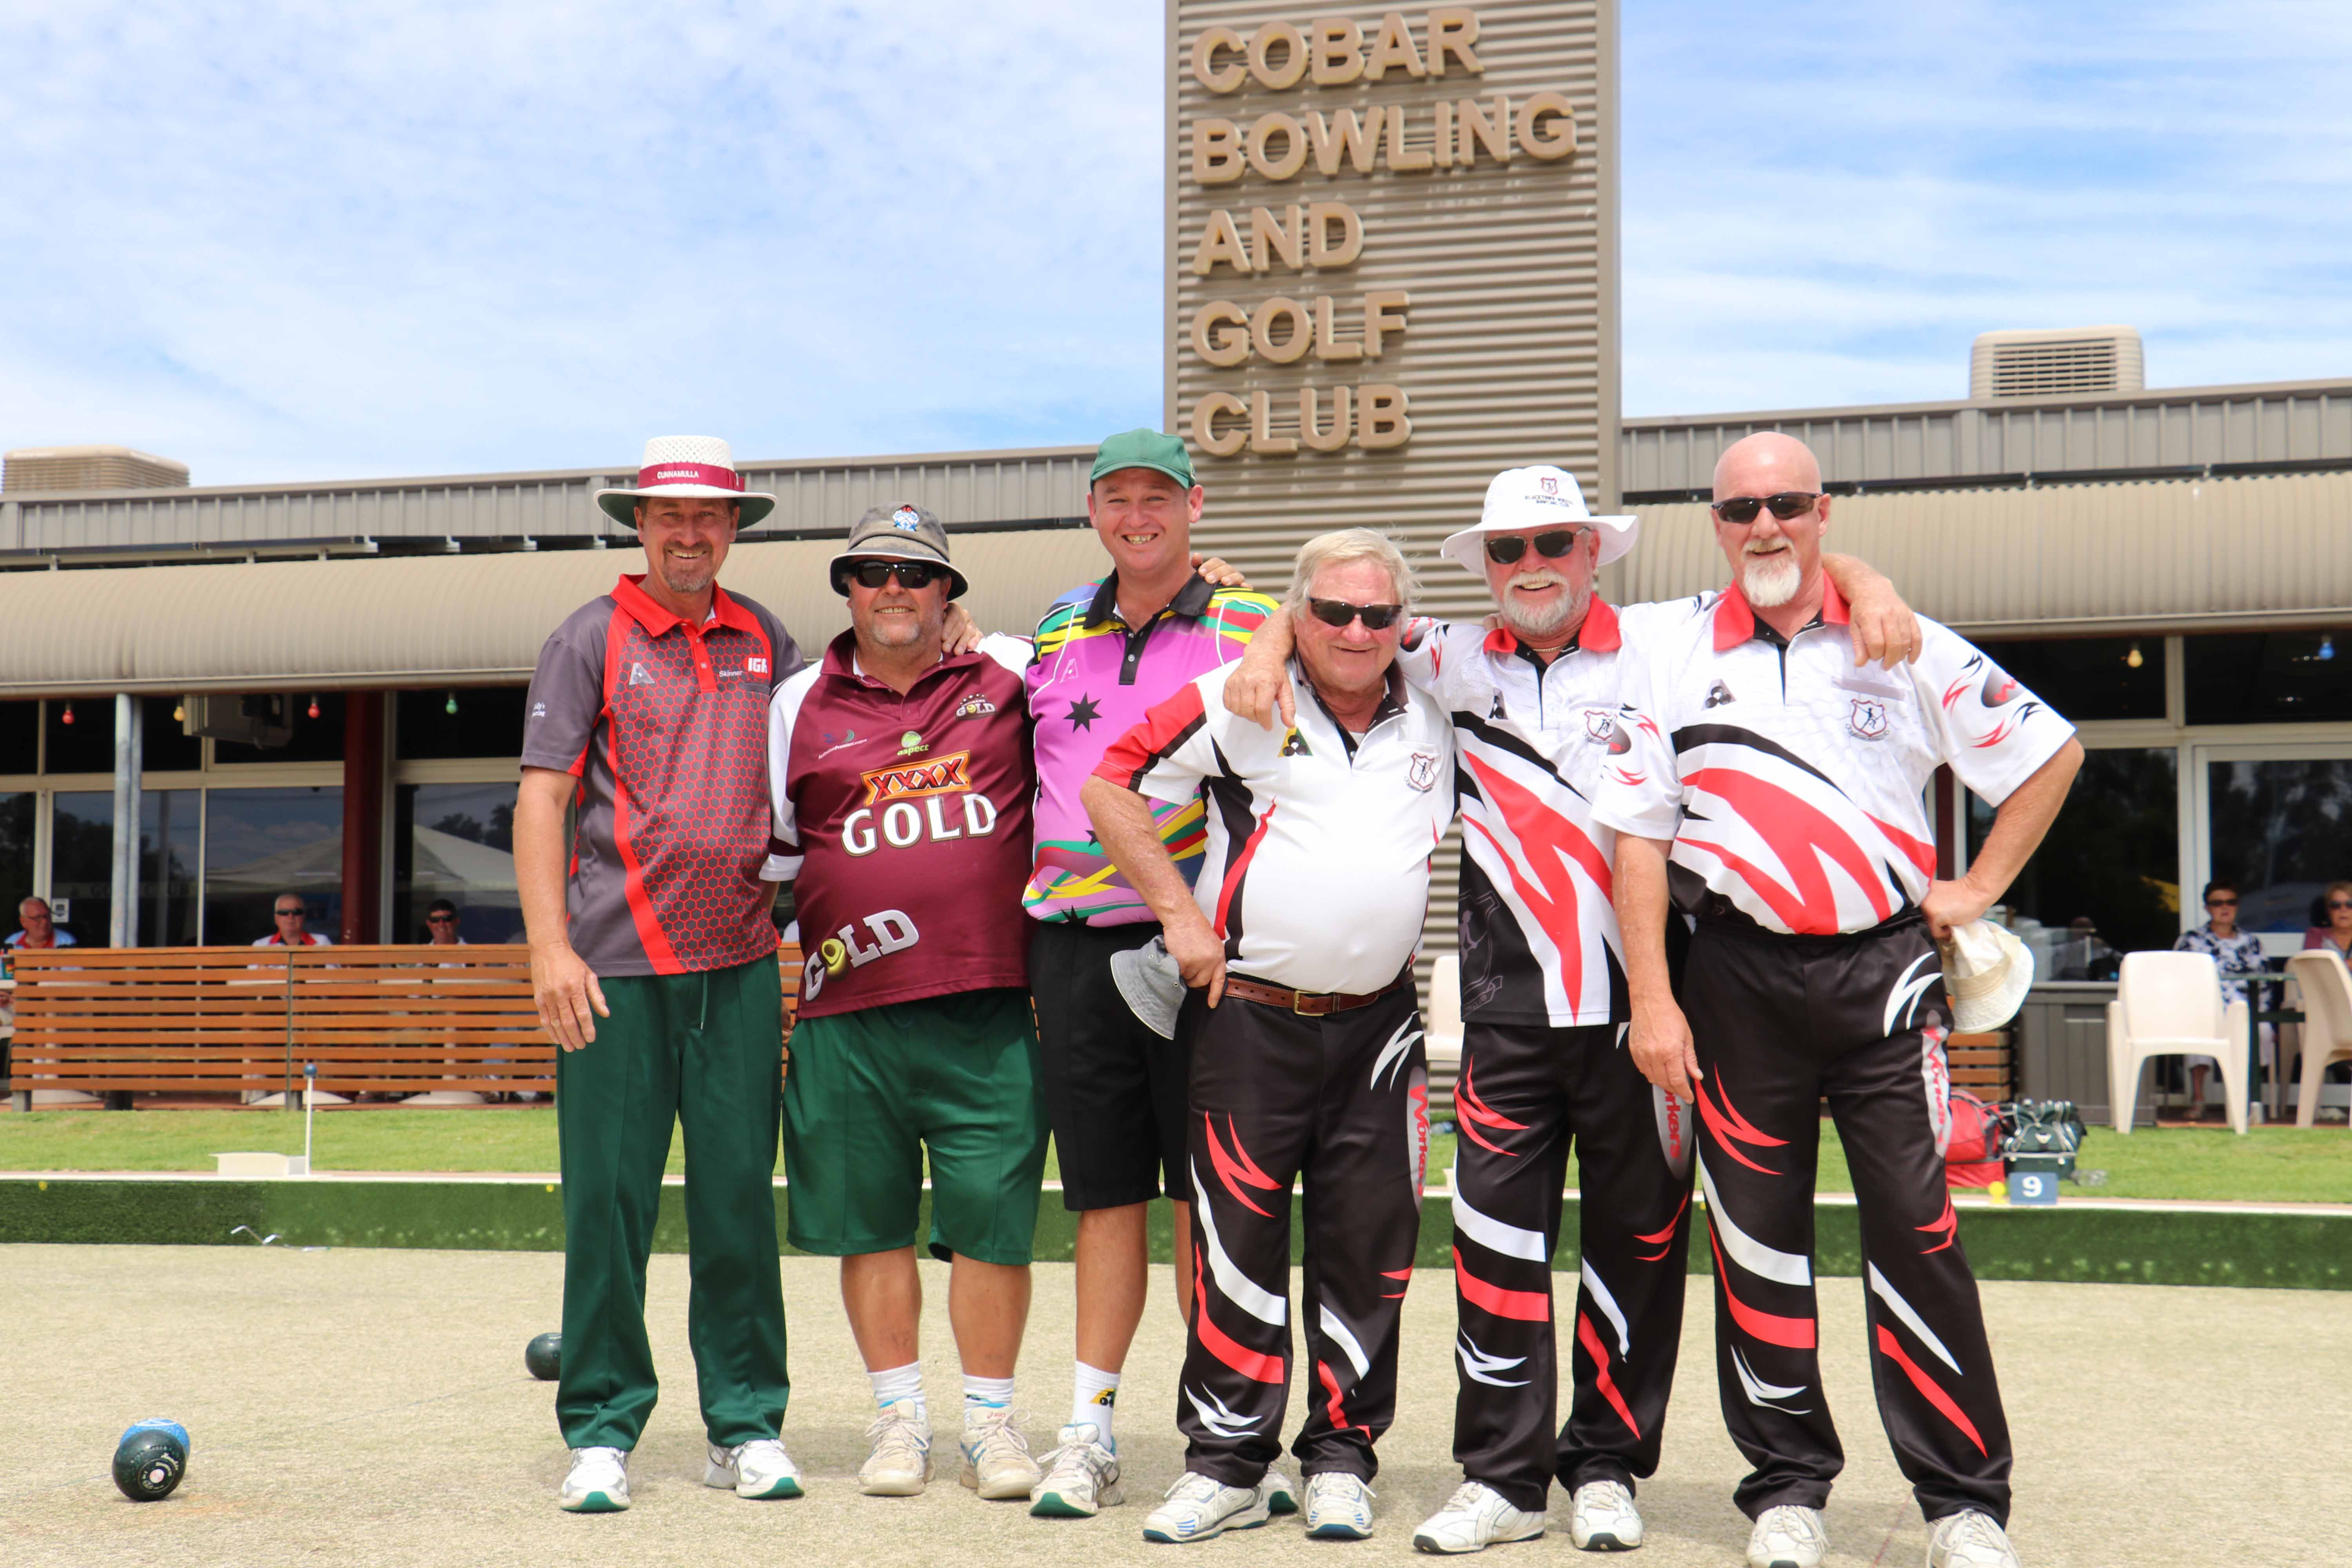 Finalists in the Golfie's Triples Bowls tournament on Sunday were they Cunnamulla team of Brett Ferguson, John Mills and Rick Brain and the Blacktown team of Ziggy  Palka, Rod Bartley and Peter Embelton. Blacktown finished as the overall winners.